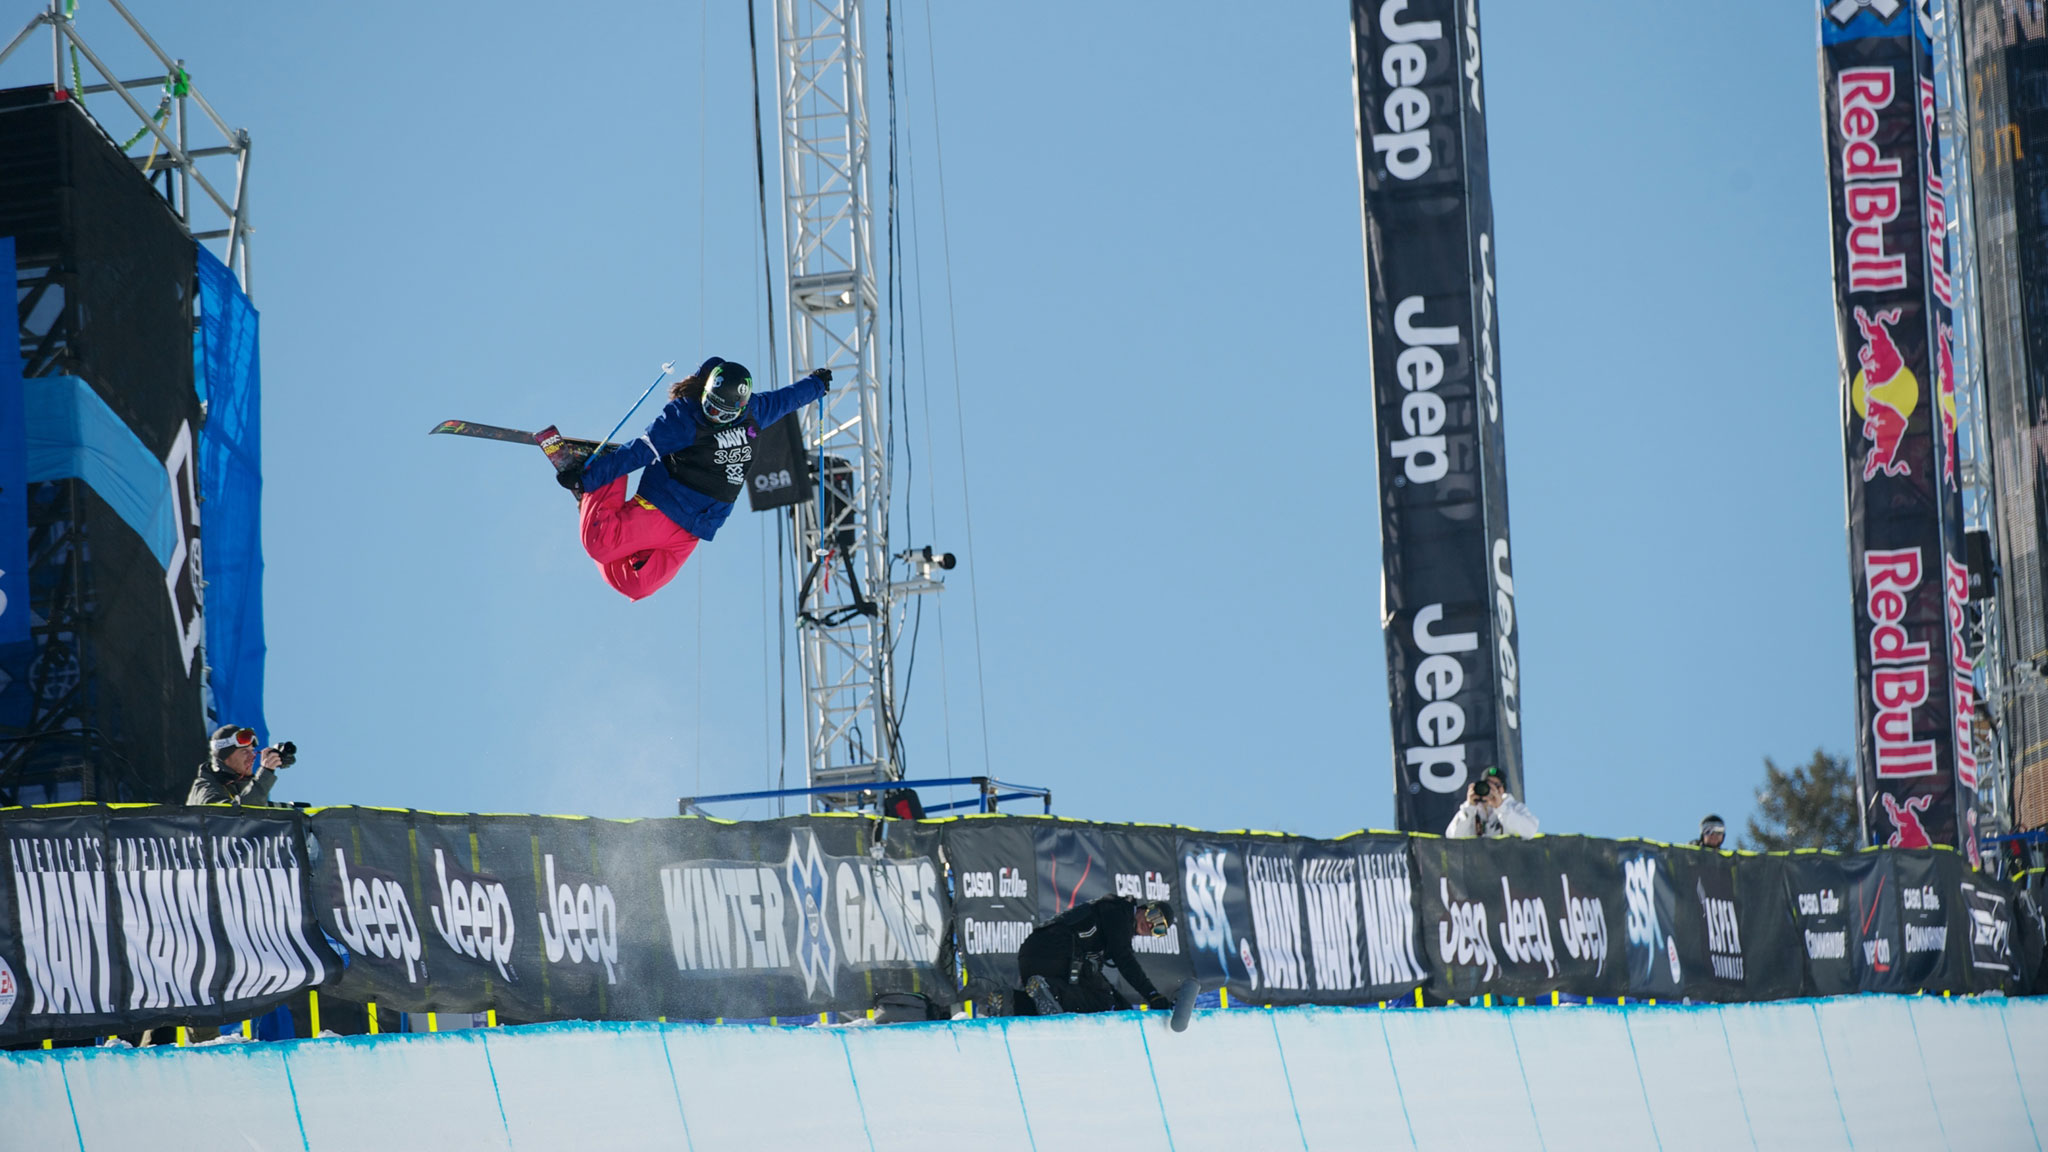 Devin Logan will be competing in Women's Ski Slopestyle on Sunday at X Games Aspen.